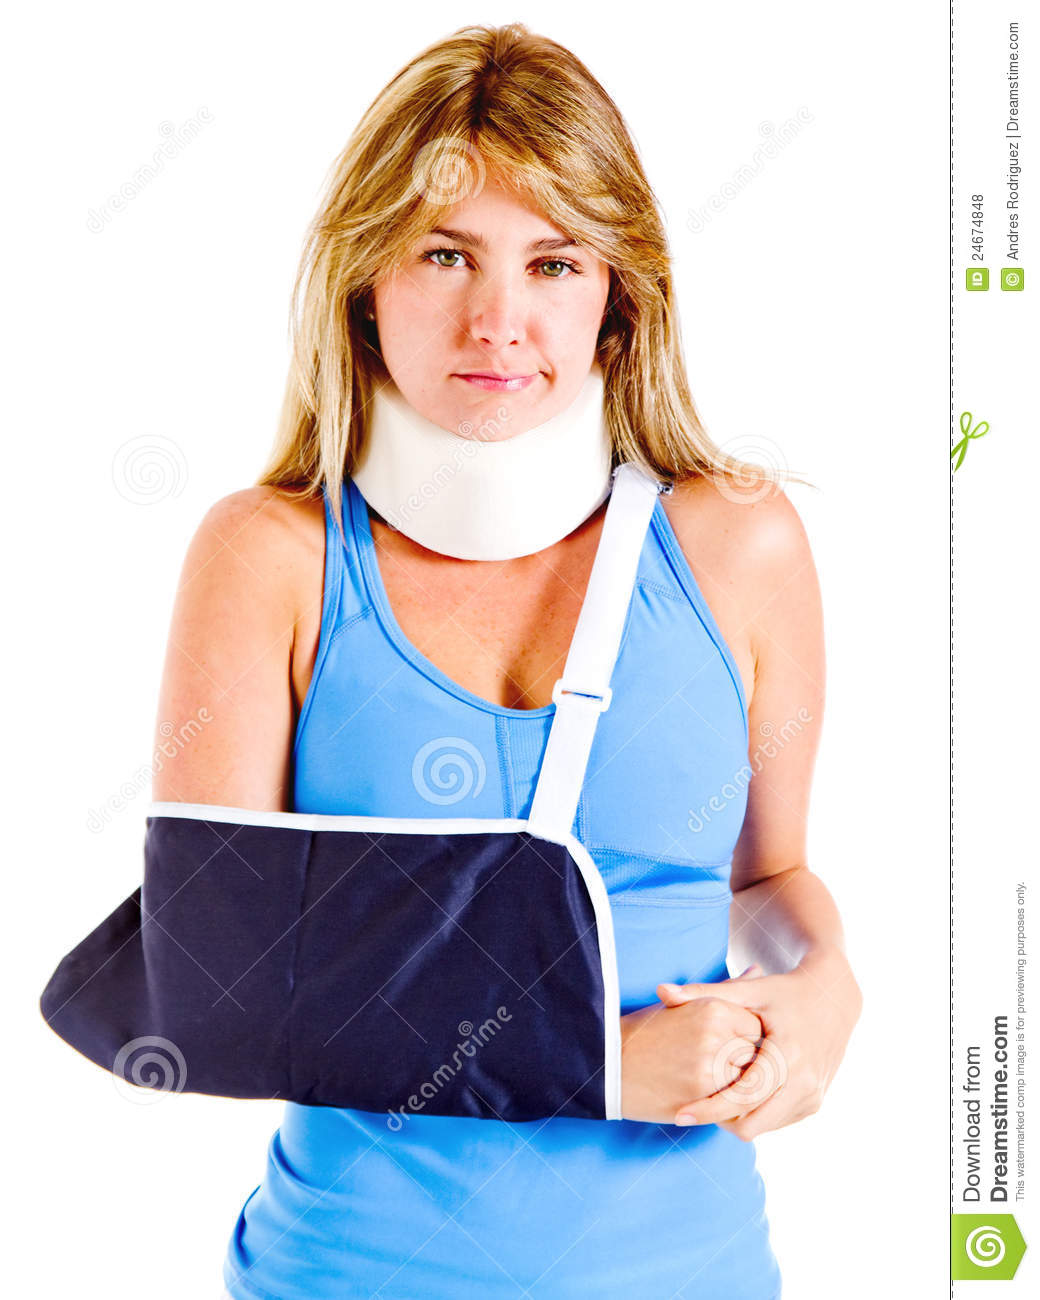 Injured woman stock photo. Image of adult, girl, sore ...